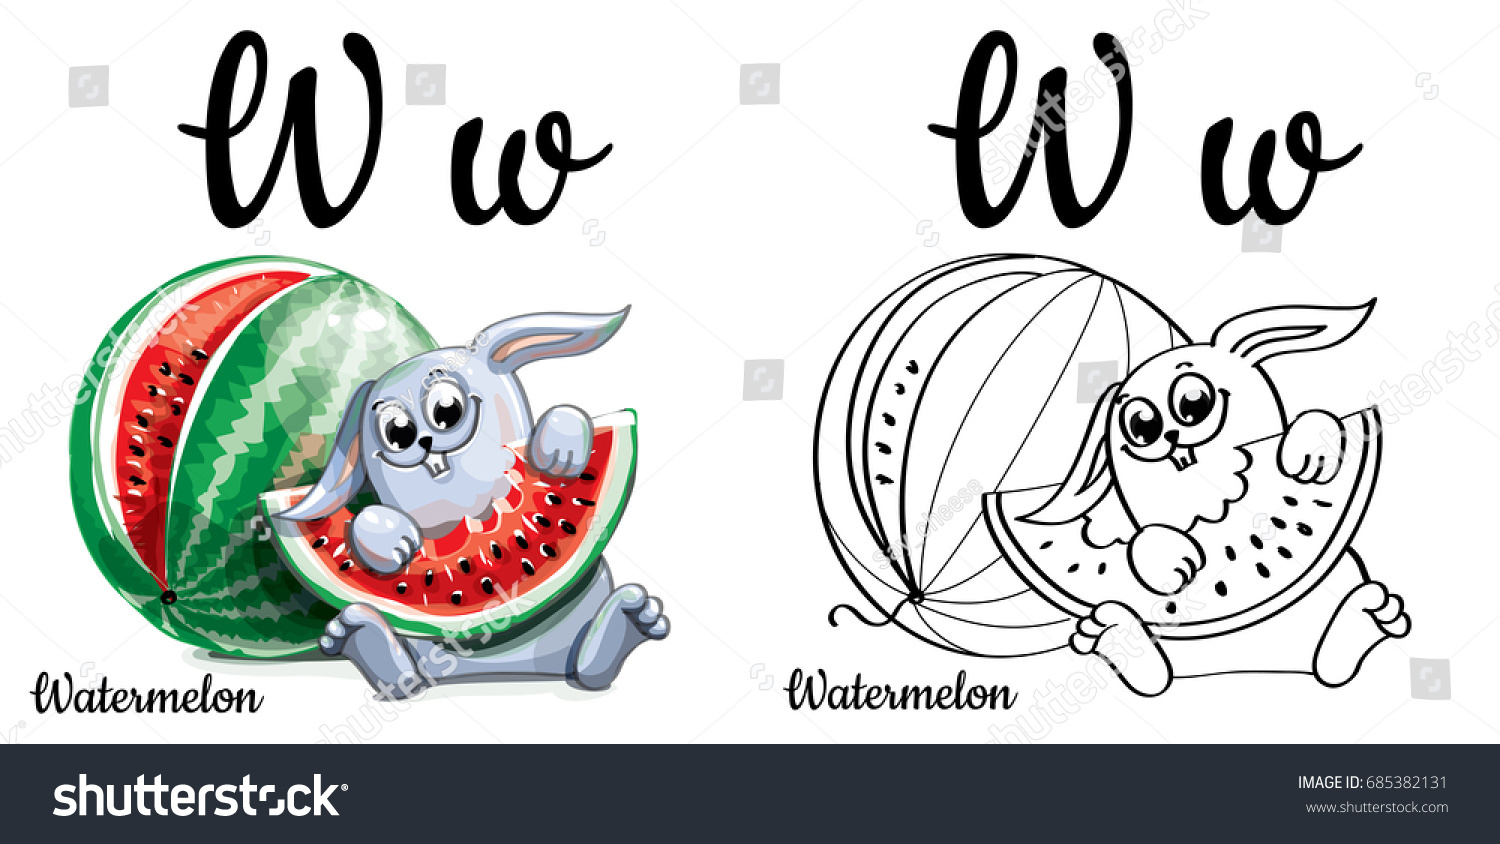 watermelon alphabet letter w coloring page stock vector 685382131